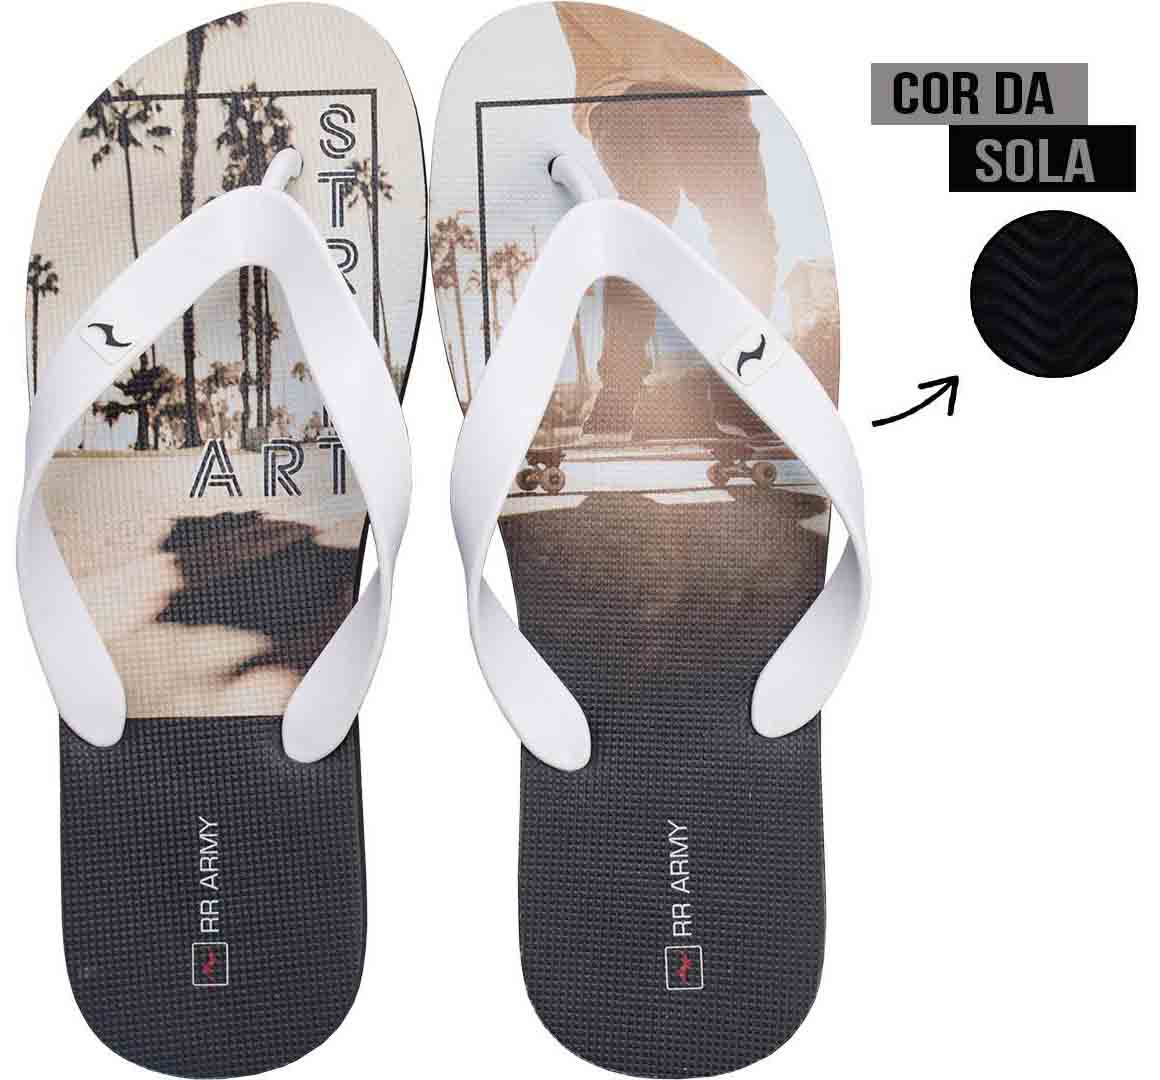 Chinelo Branco Street Art RR Army